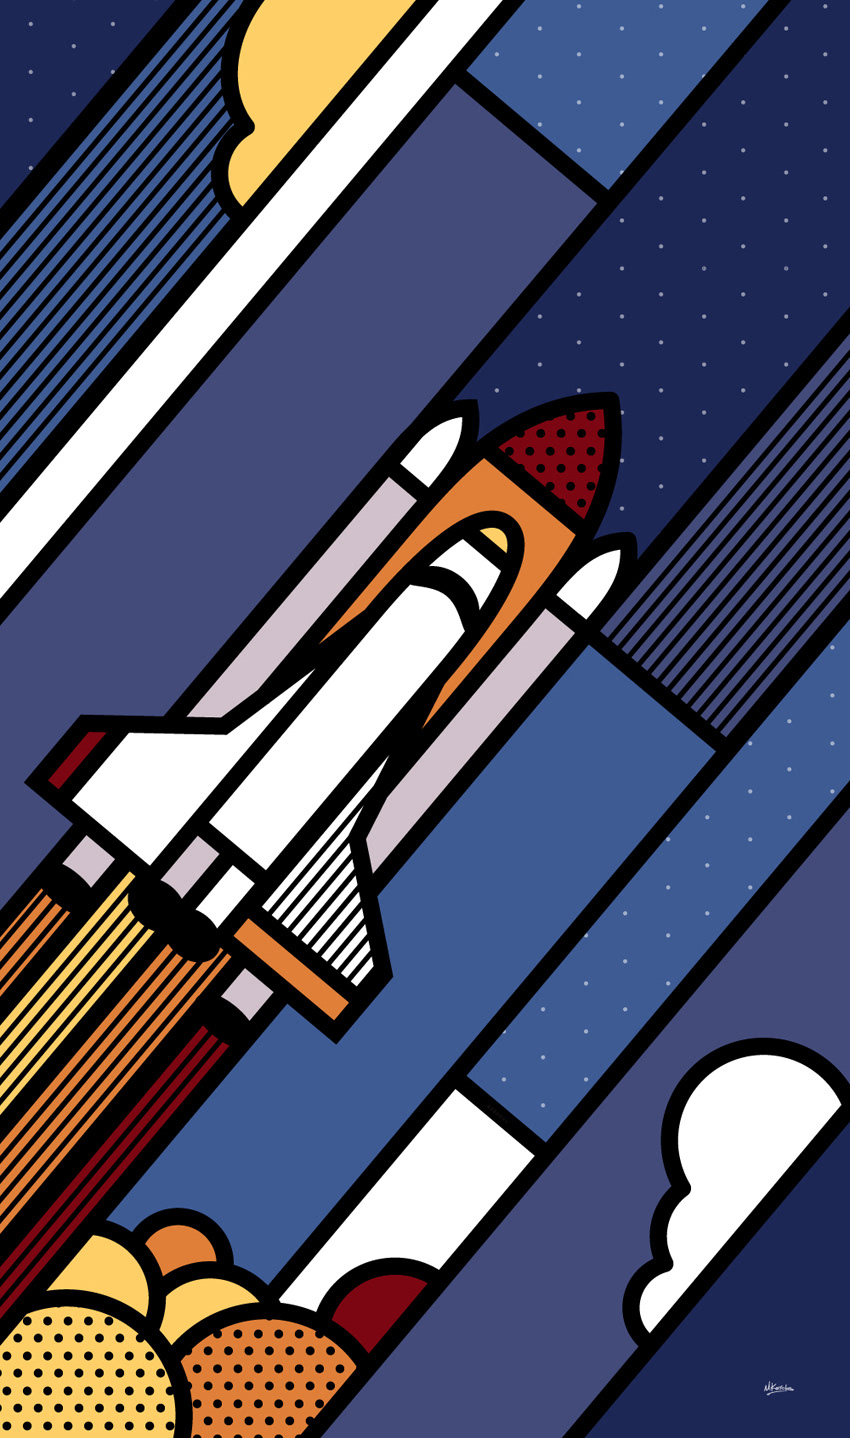 rocket Space  canvas Technology Pop Art geometric Patterns athens offices abstract